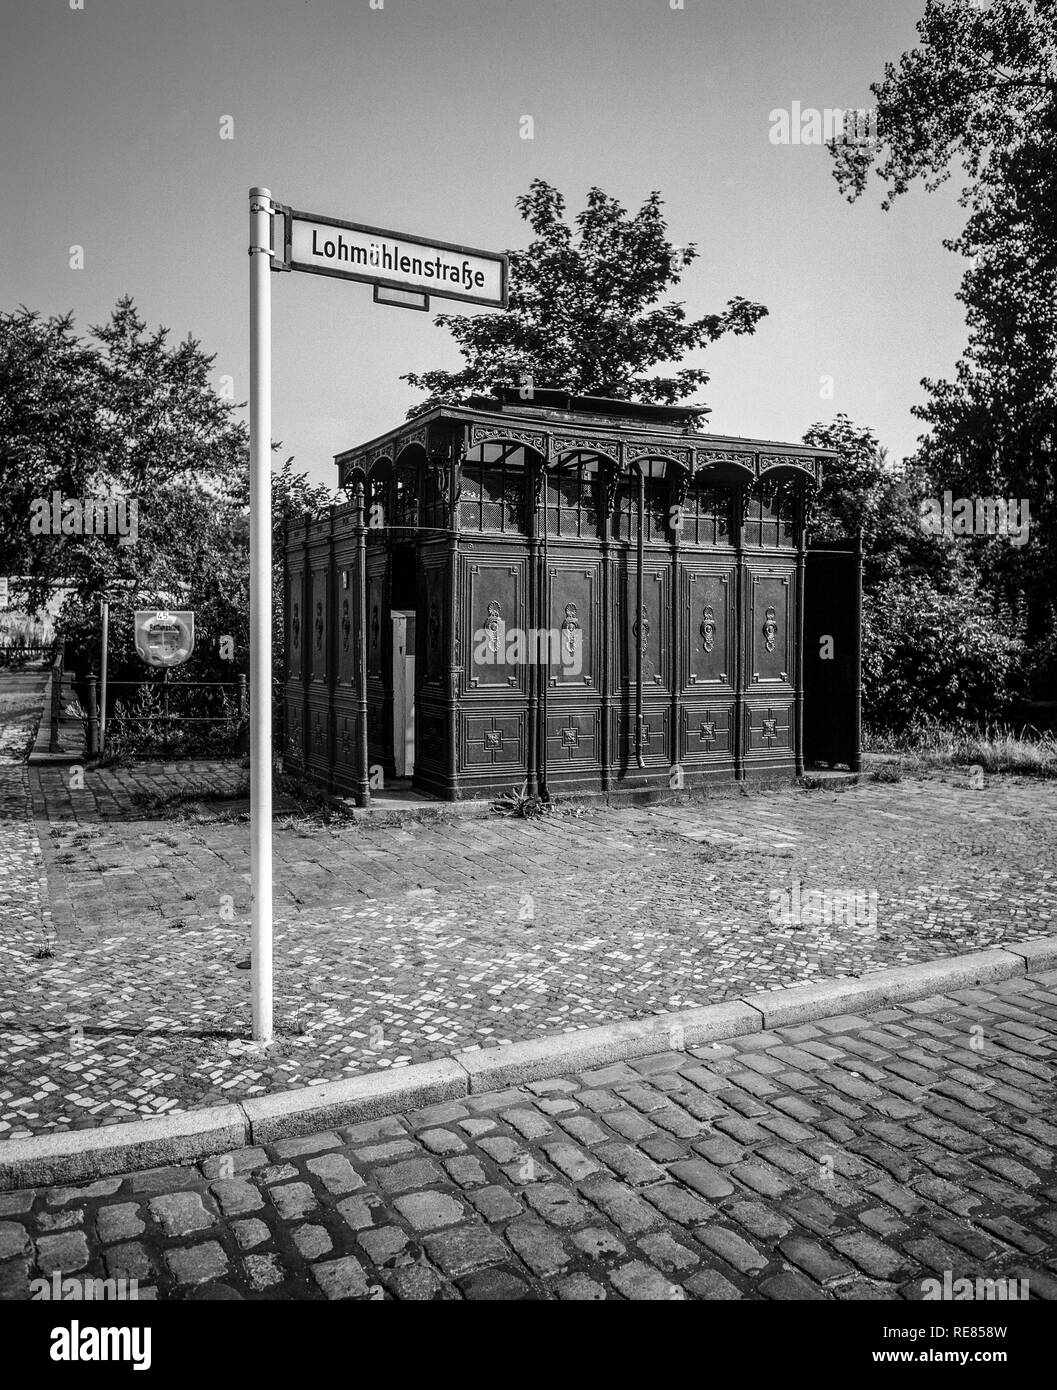 August 1986, ancient public toilet 1899, Lohmühlenstrasse street sign, Treptow, West Berlin side, Germany, Europe, - Stock Image